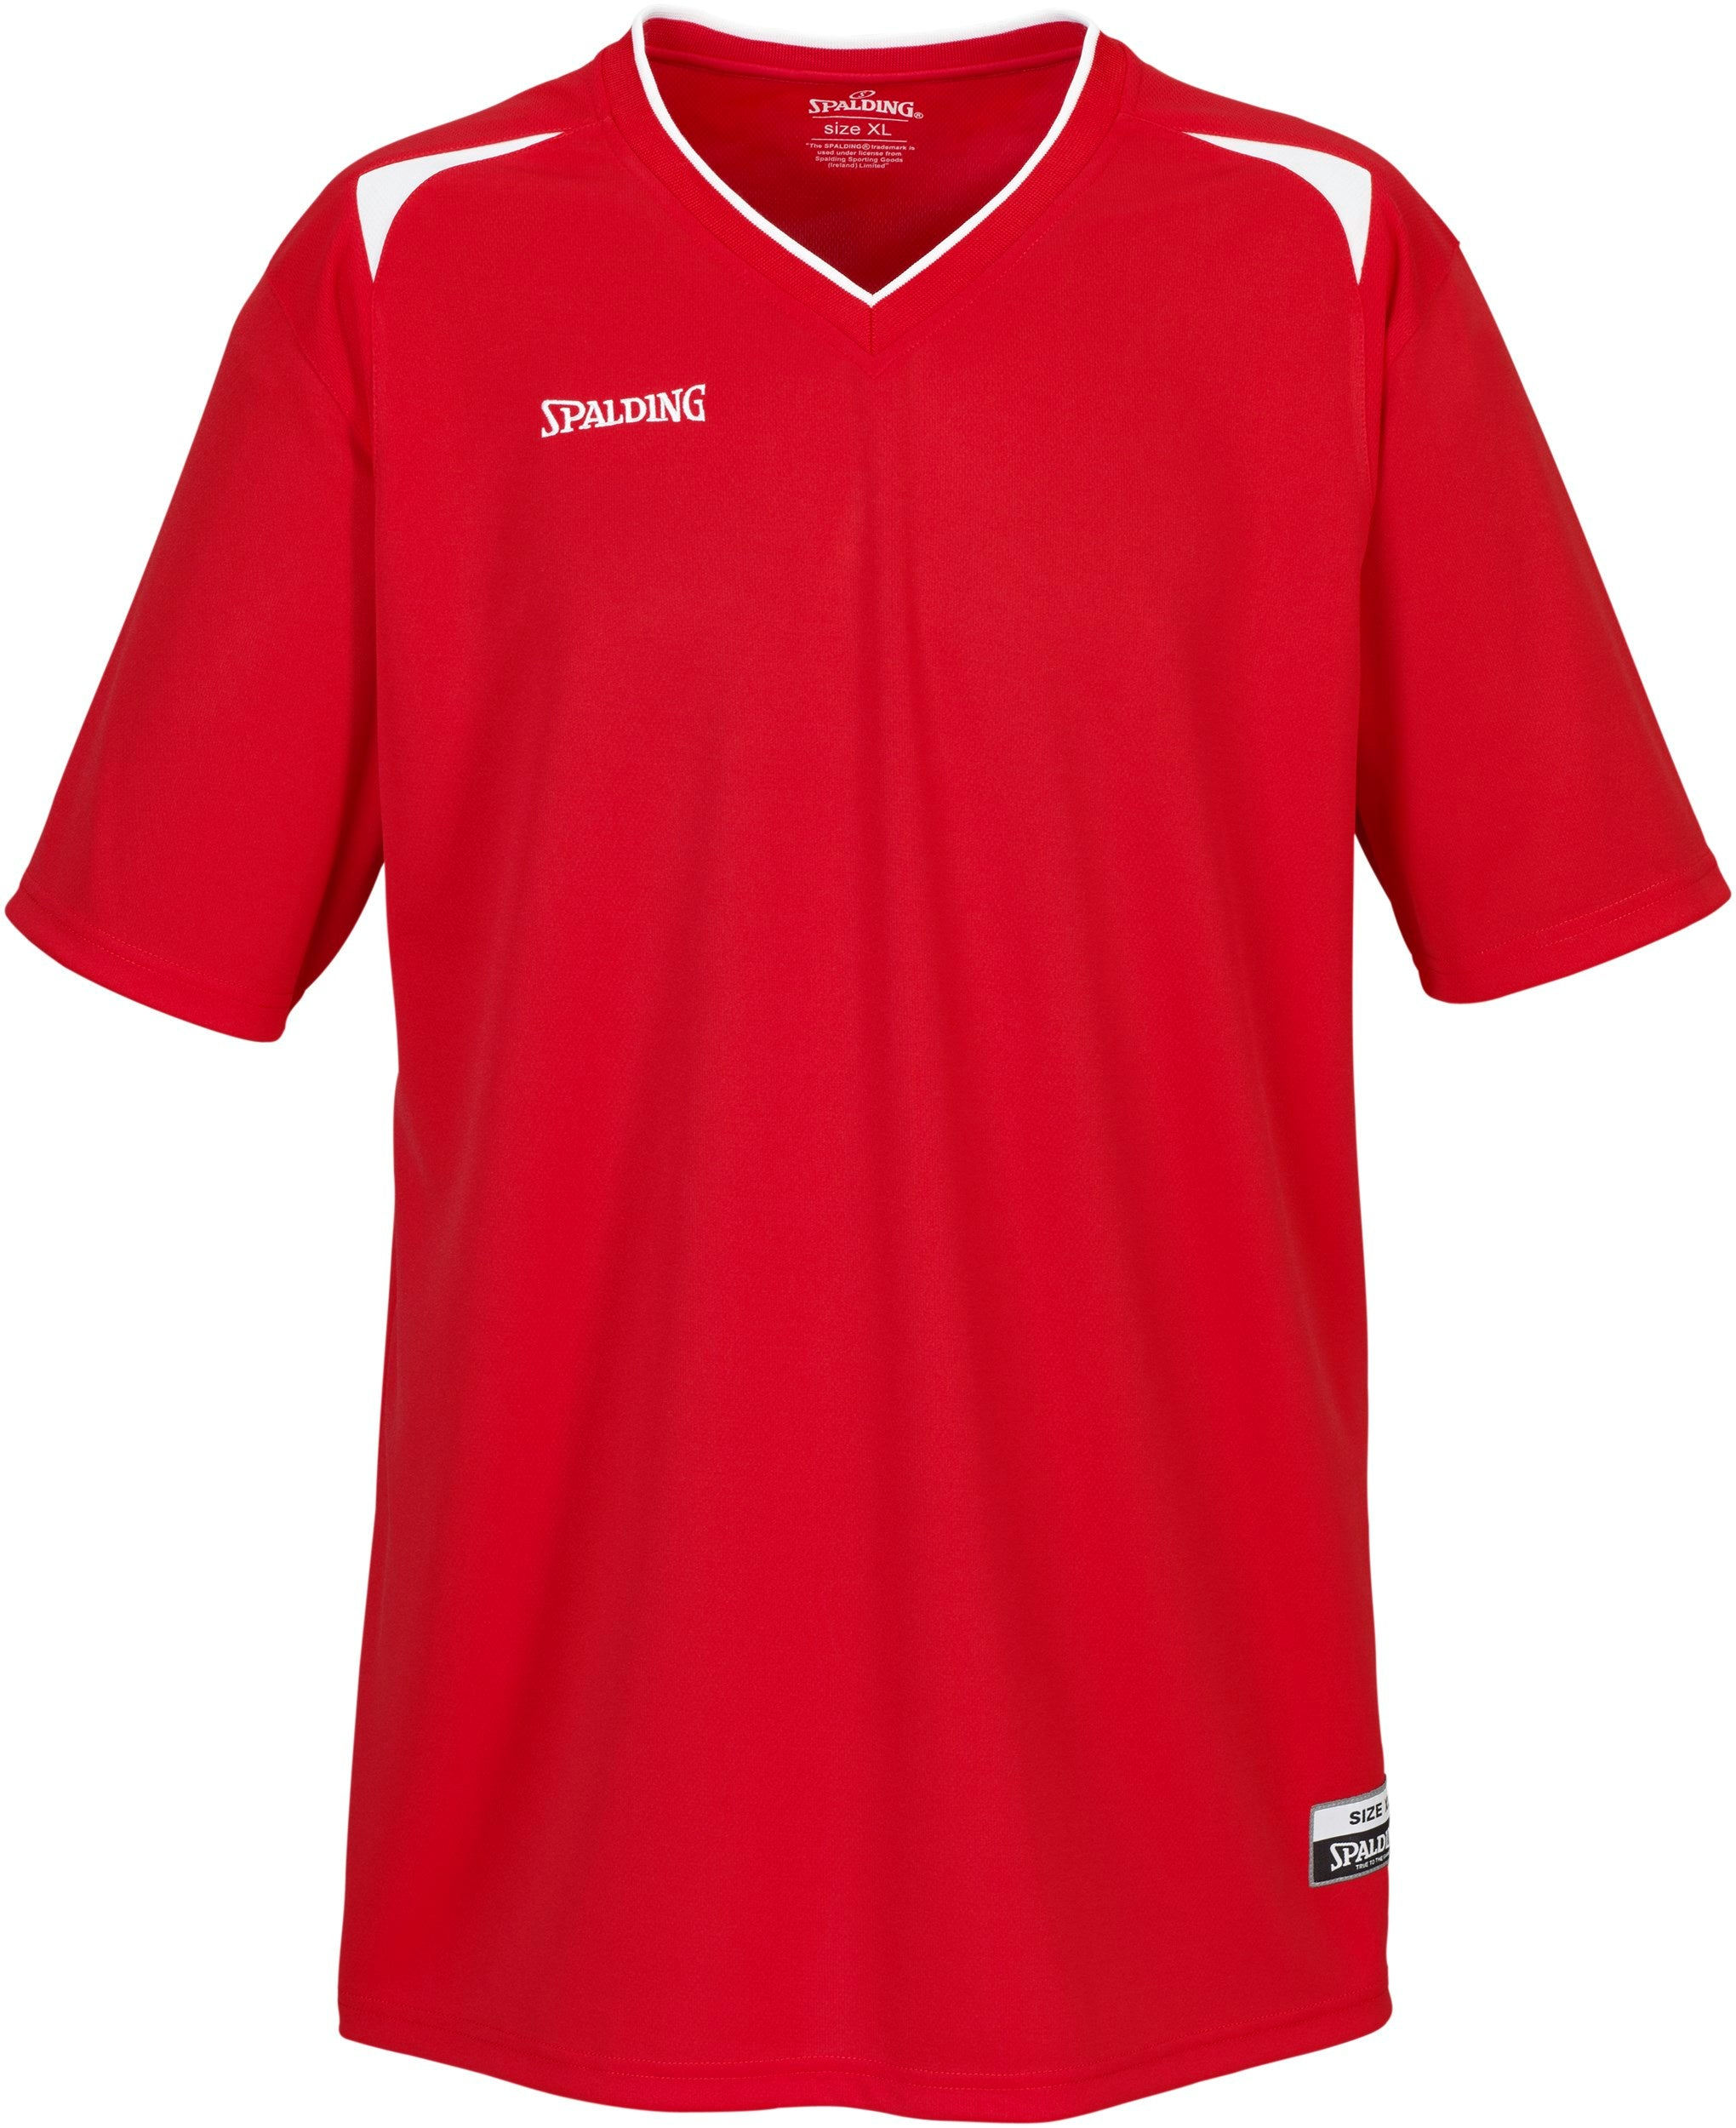 Spalding Basketball Attack Shooting Shirt - Red/White SP-300211601